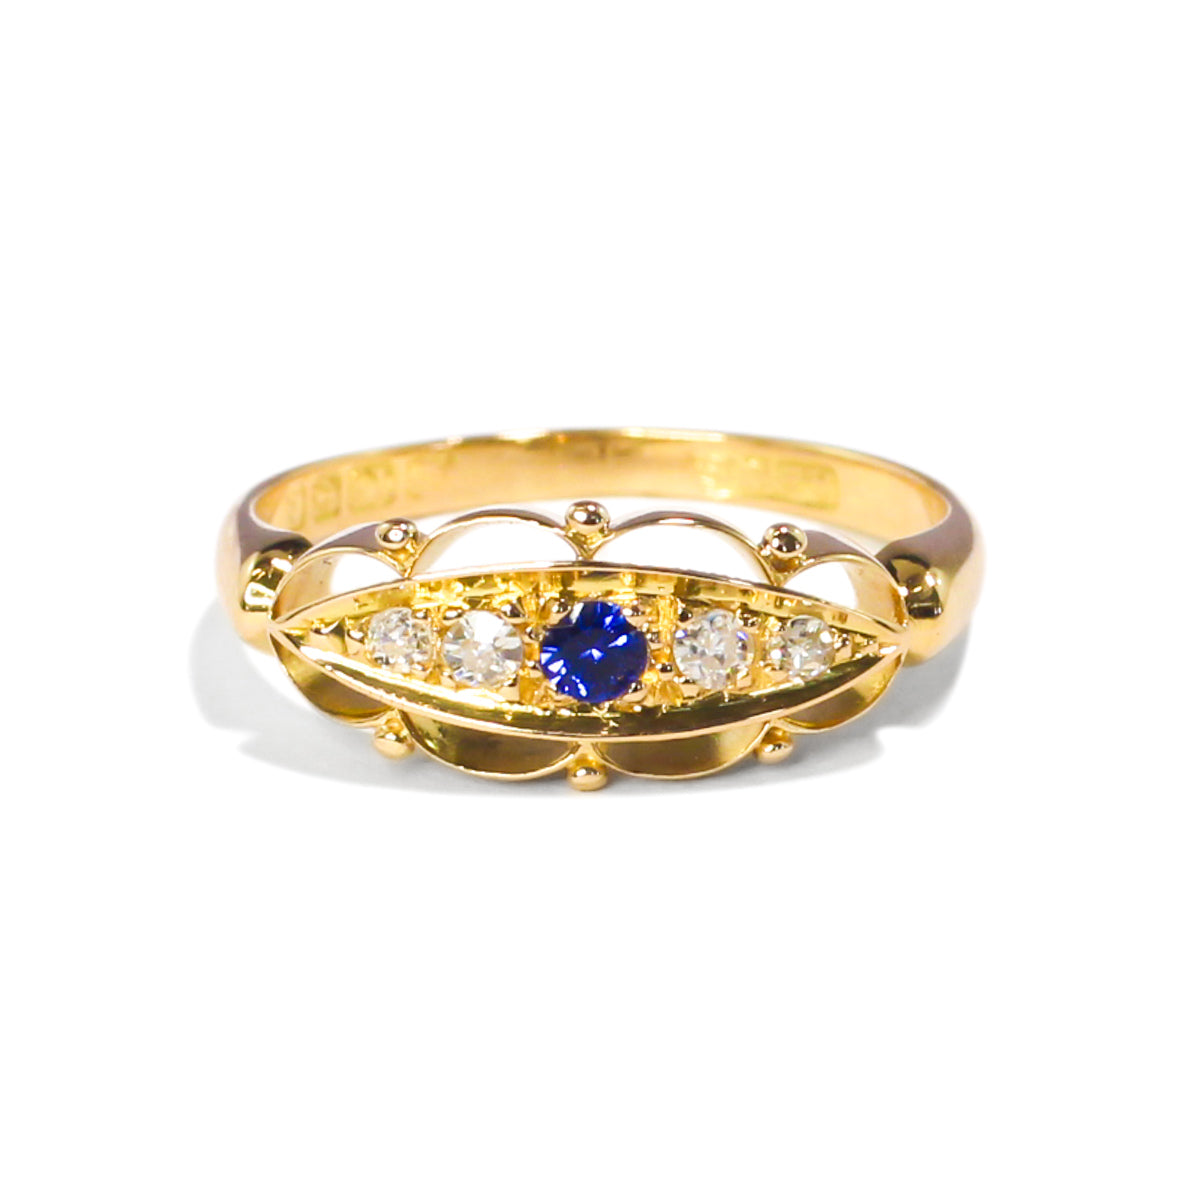 The Mary Vintage Sapphire & Diamond Ring